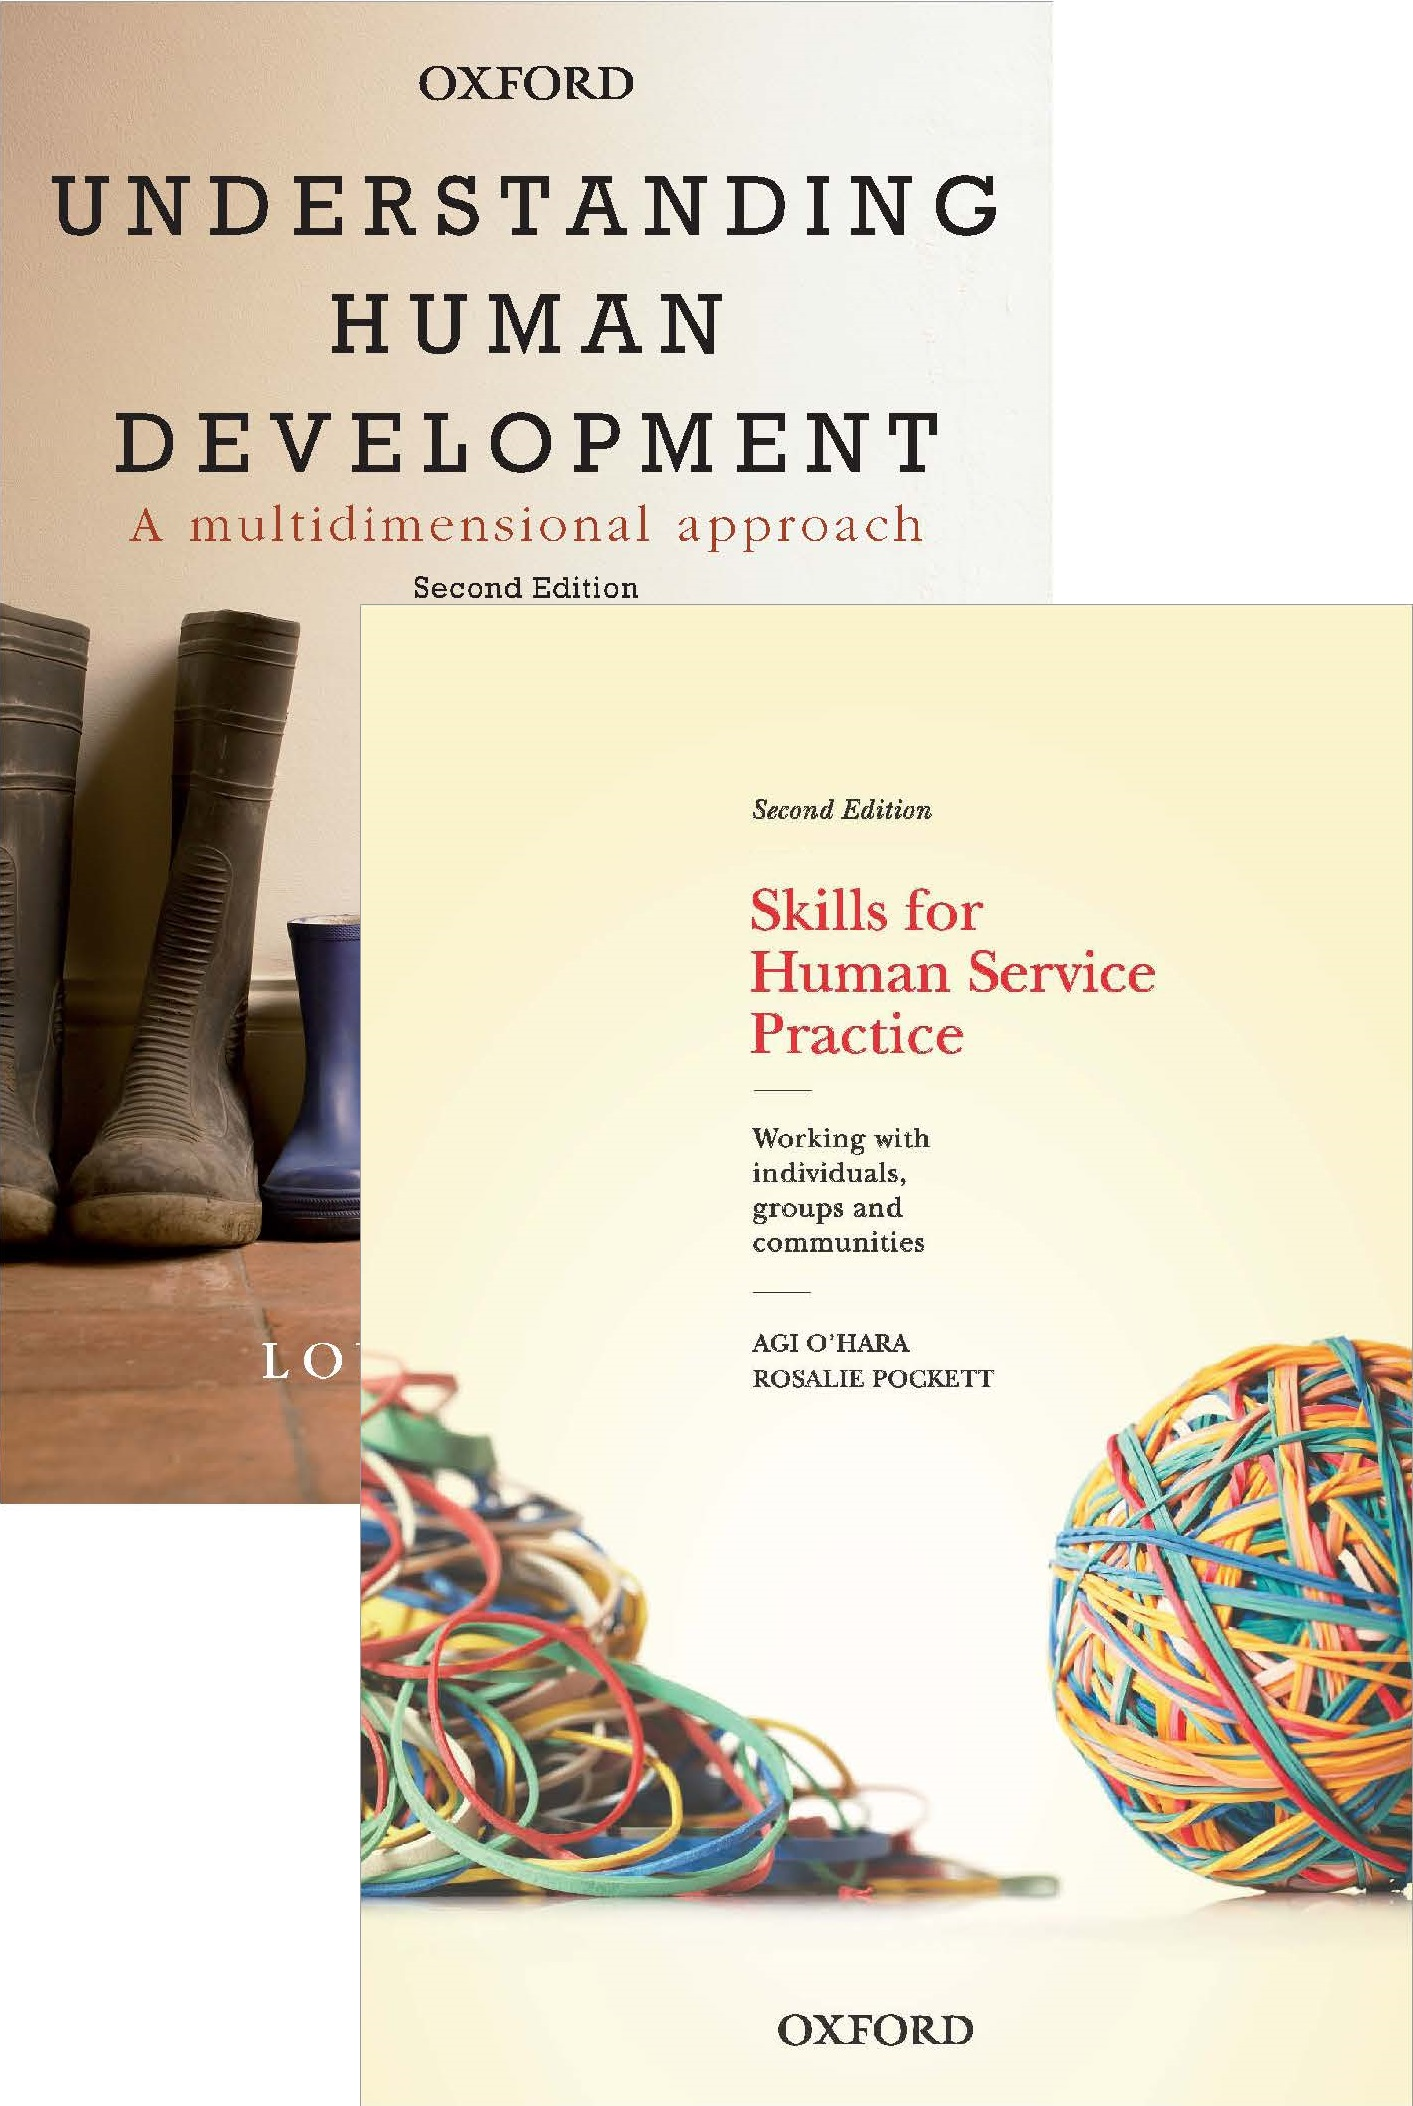 Understanding Human Development 2nd + Skills for Human Service Practice 2nd **Value Pack**